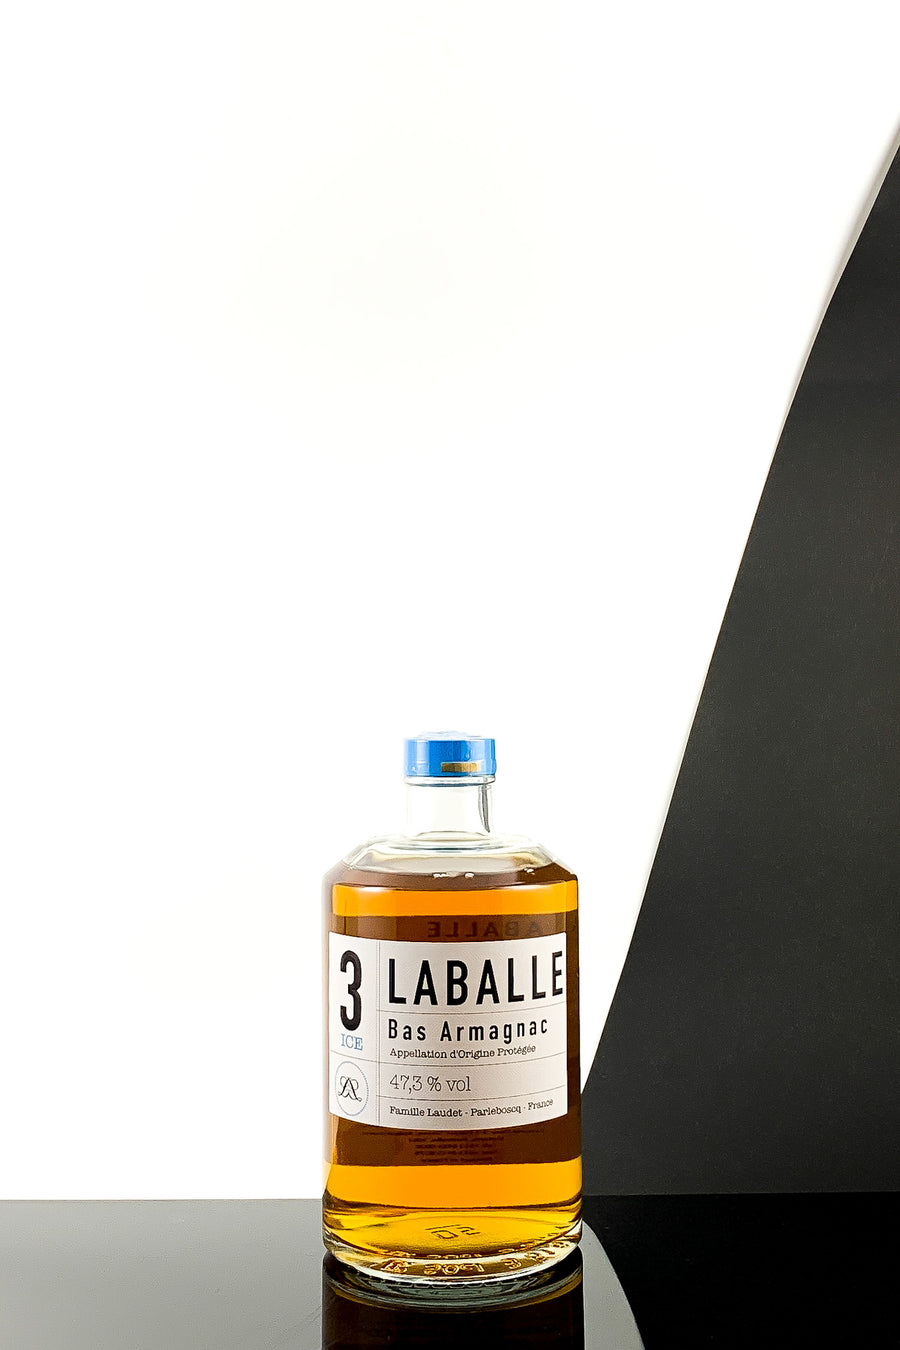 Chateau Laballe Bas Armagnac Ice 3 Years